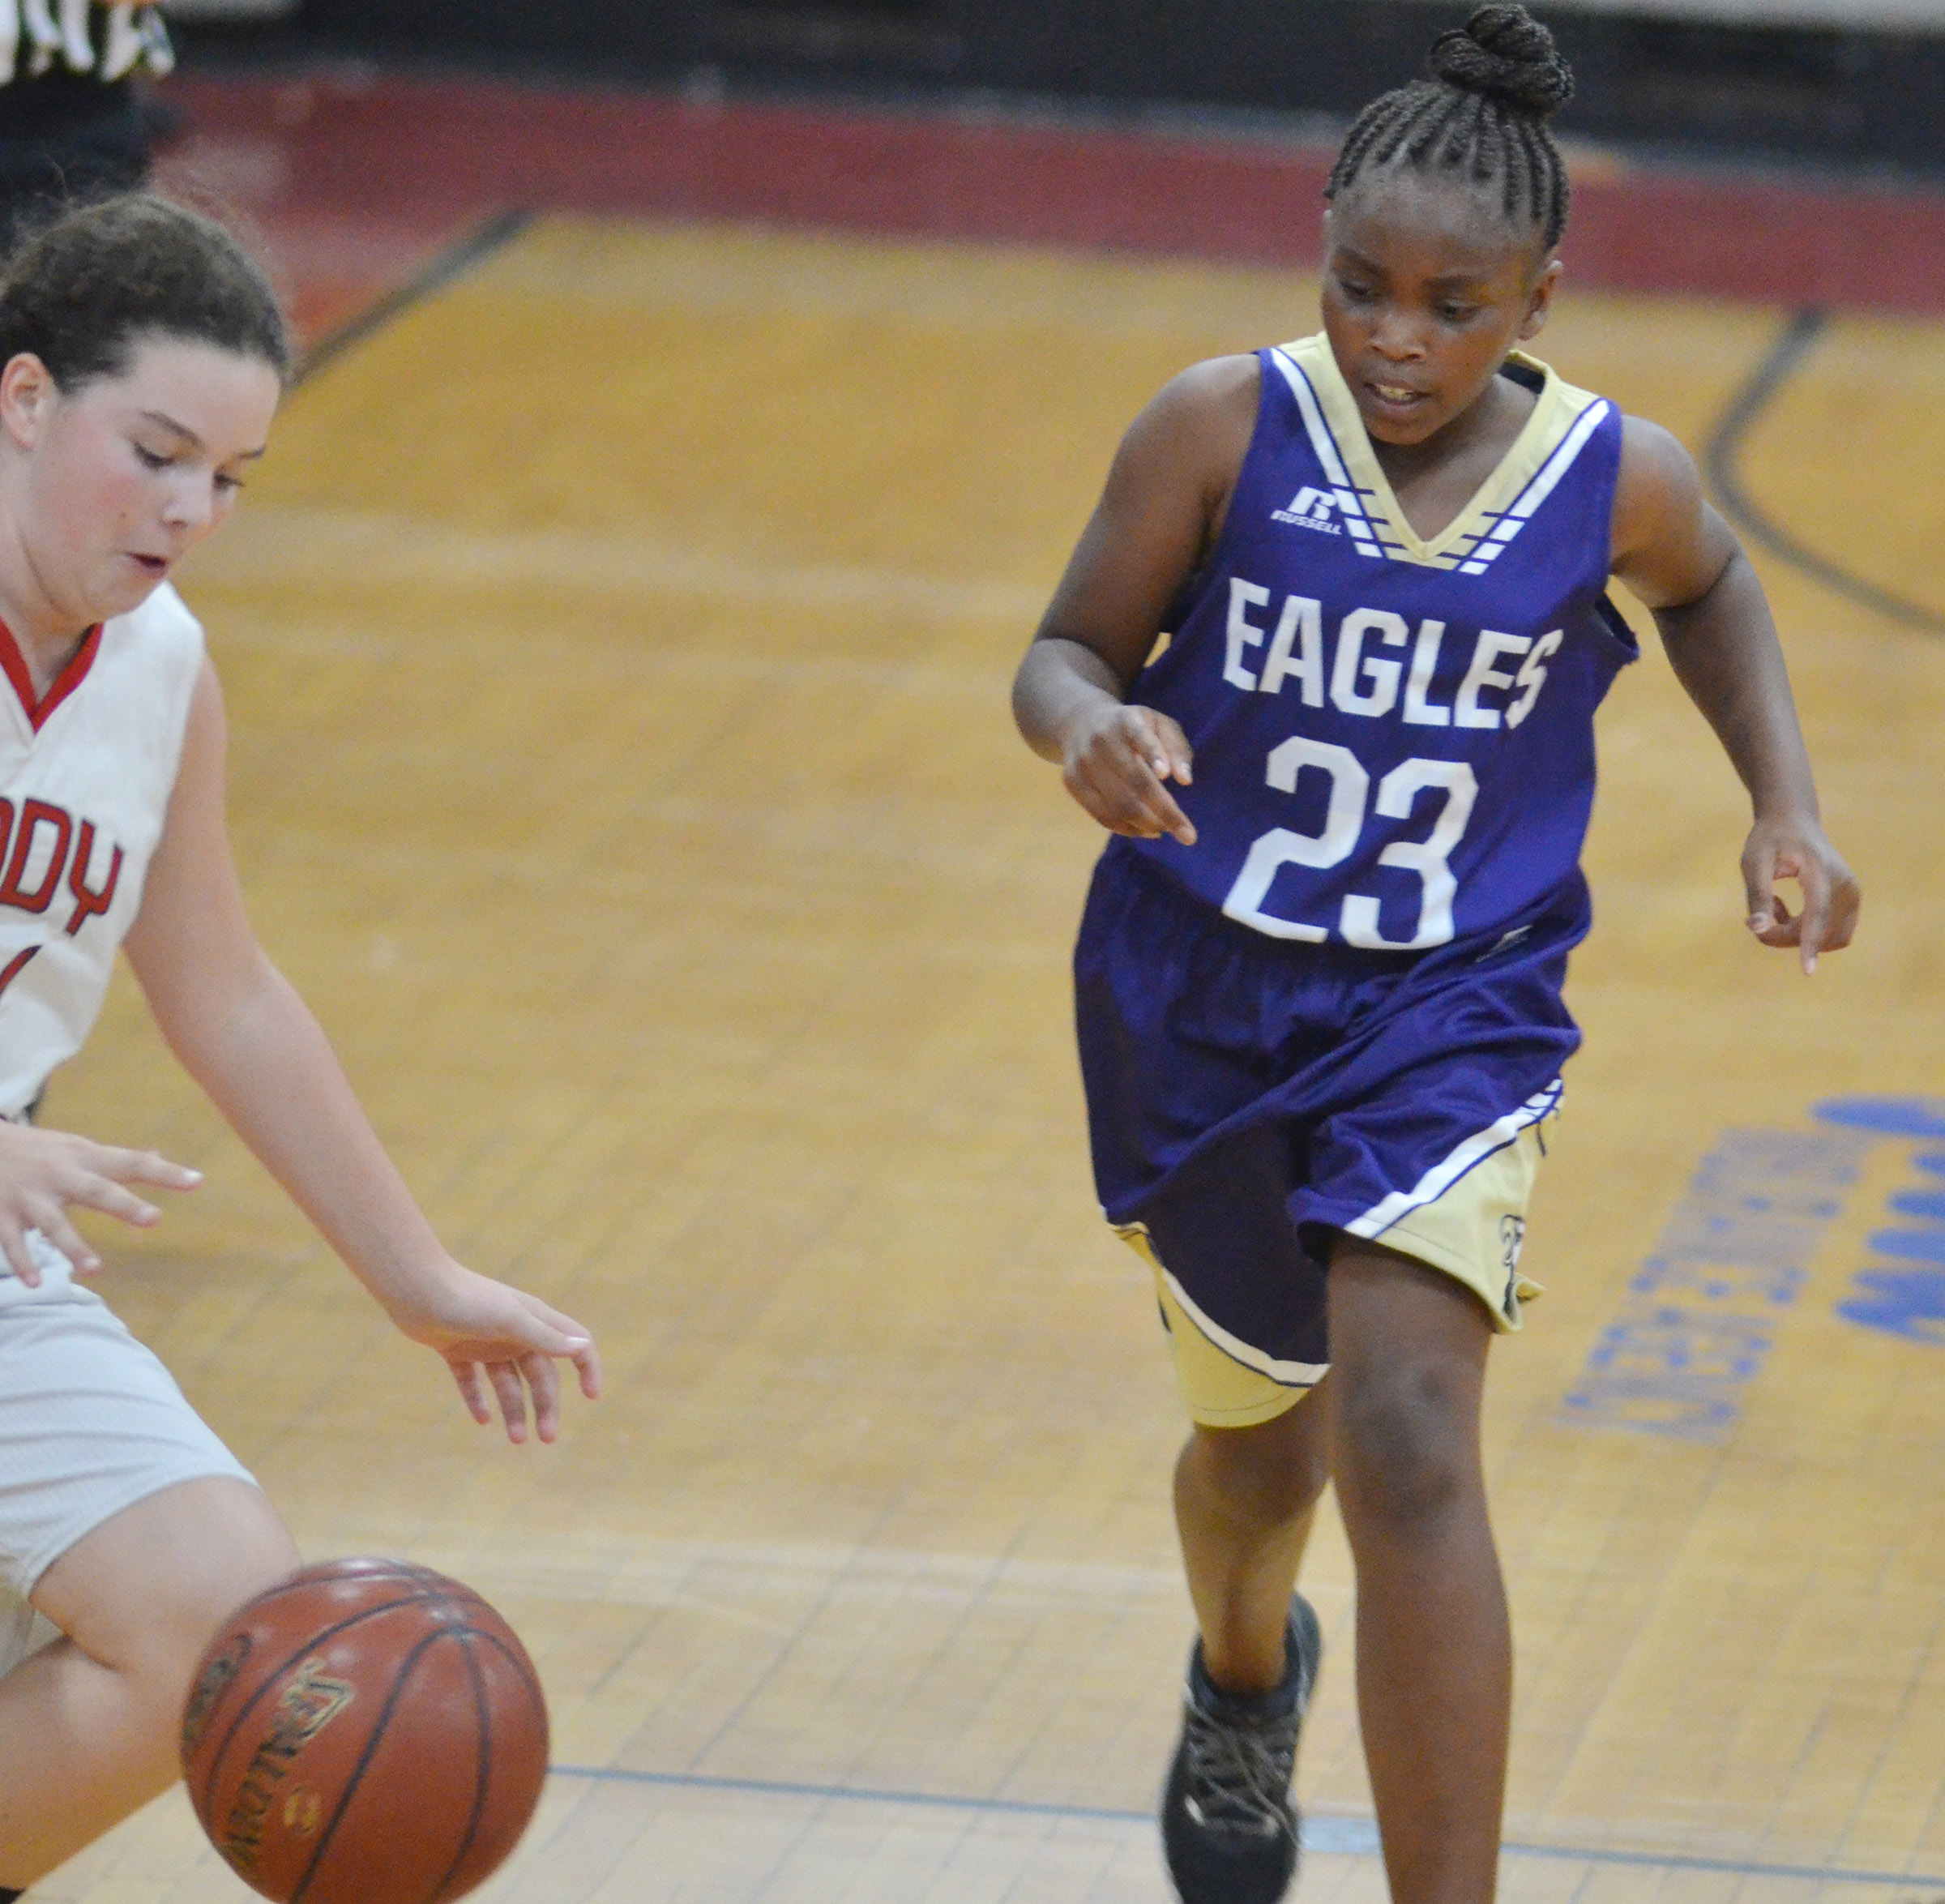 Campbellsville Elementary School fifth-grader Ta'Zaria Owens looks to steal the ball.